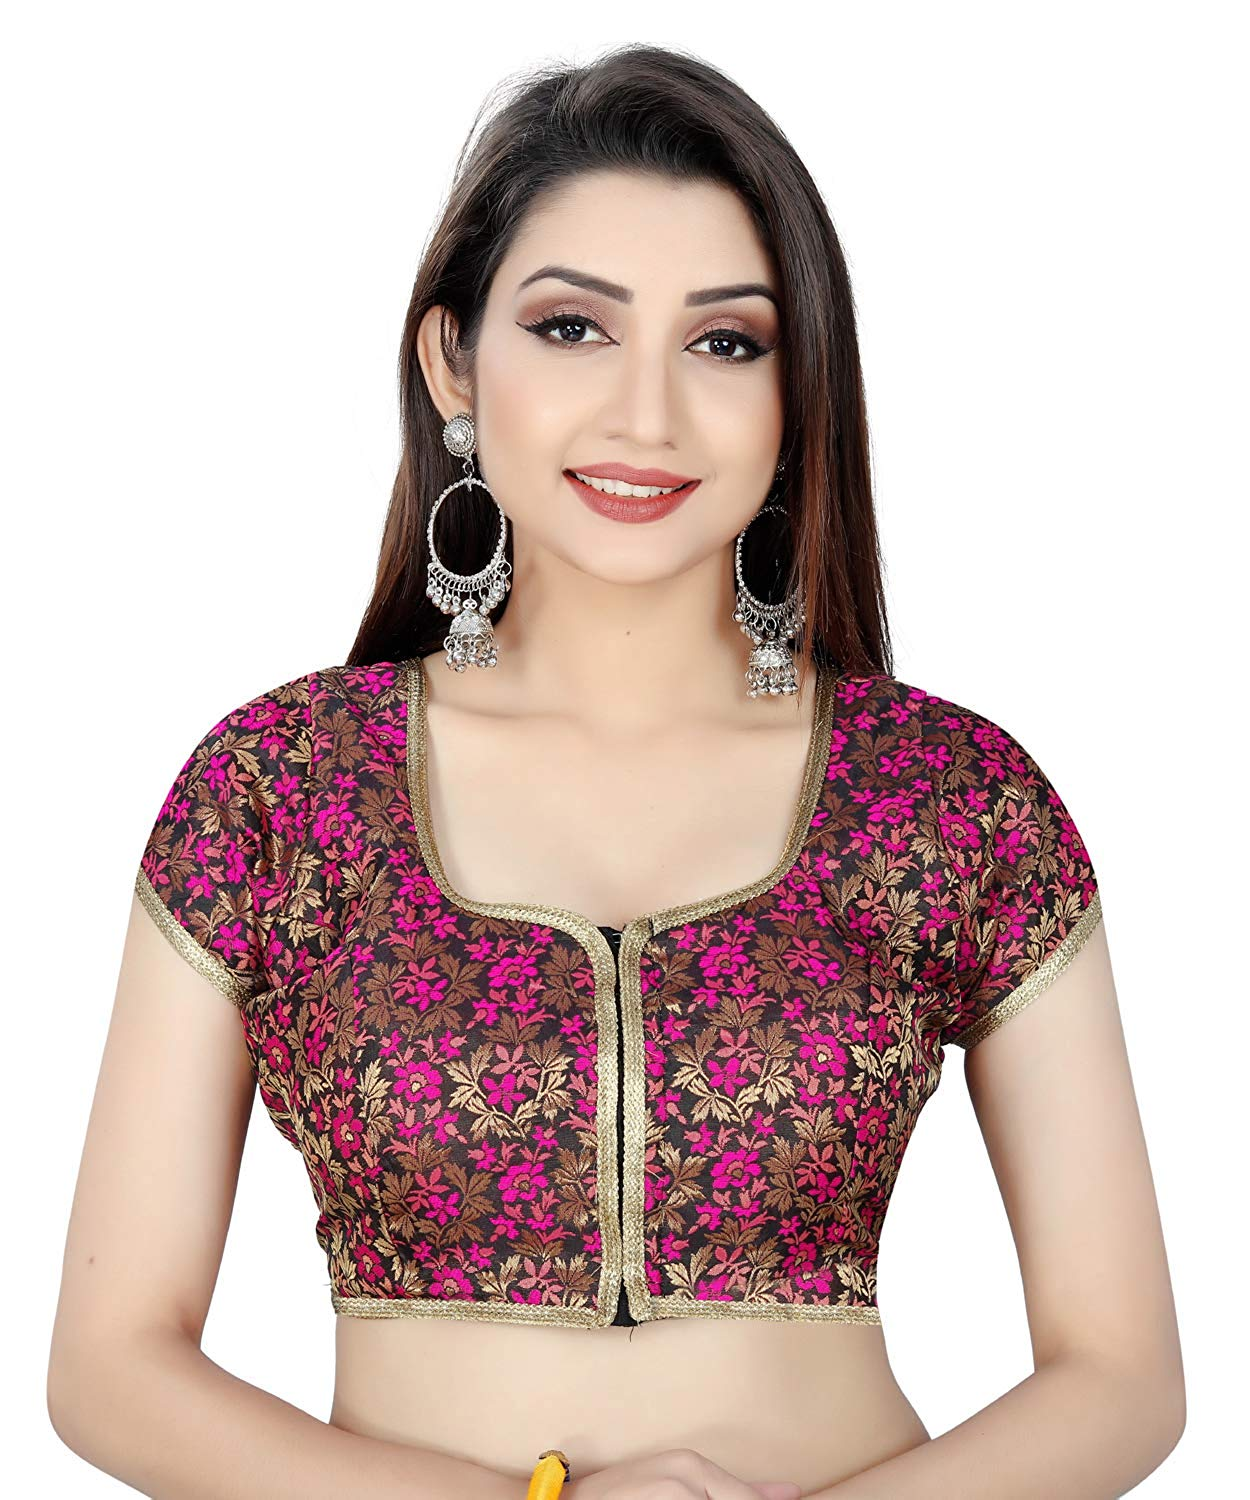 439b93364be90 Pink Flower Pattern Round Neck Women s Ready Made Saree s Blouse